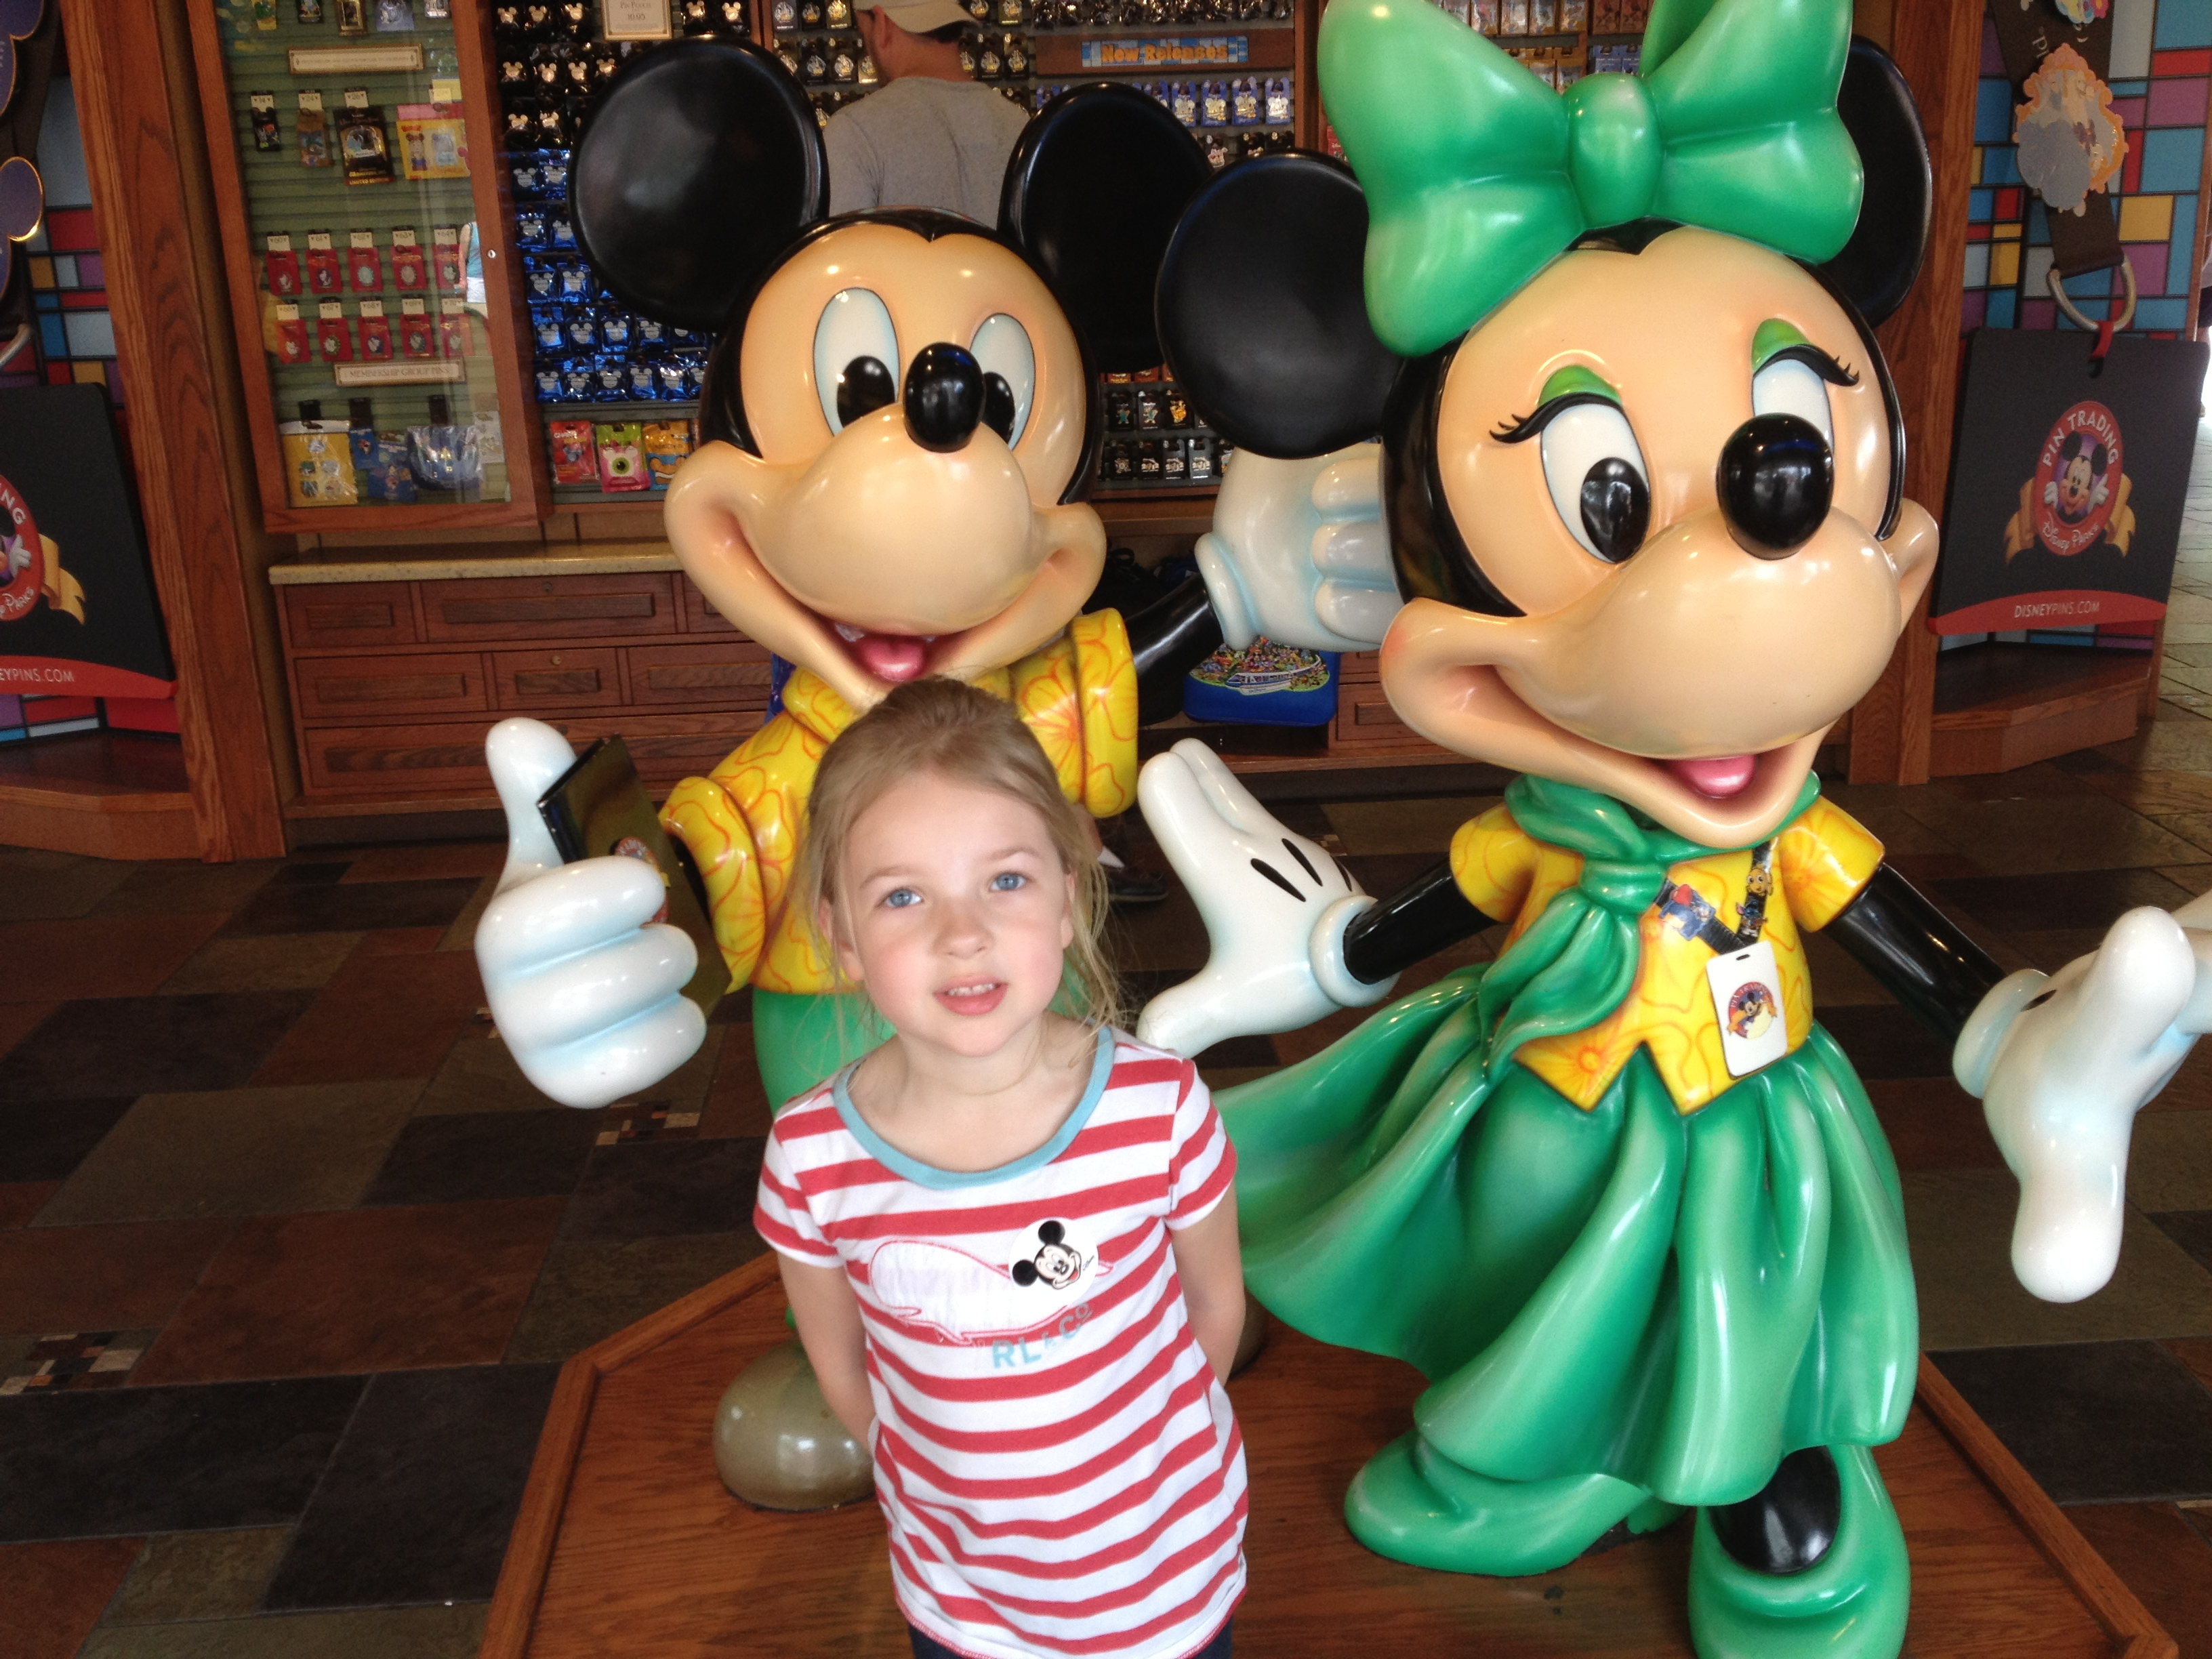 With Mickey and Minnie